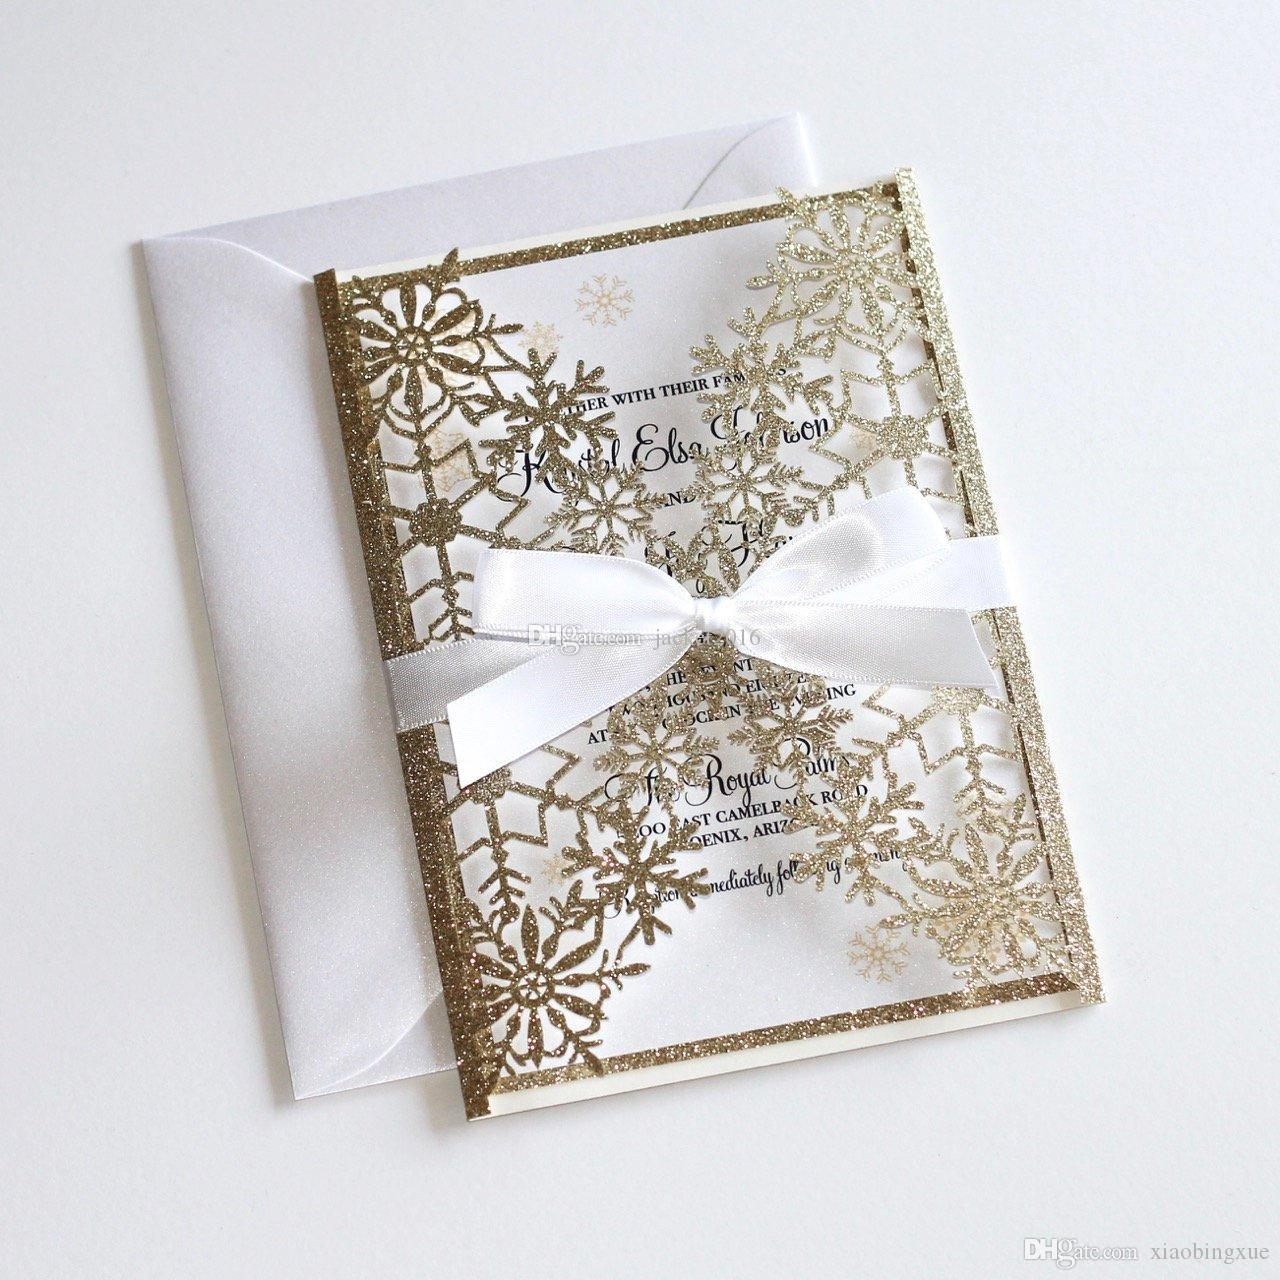 Fancy Wedding Invitations.Winter Glitter Wedding Invitation Snowflake Laser Cut Invitation Elegant Wedding Invite Gold Glittery Wedding Invitations With Bow